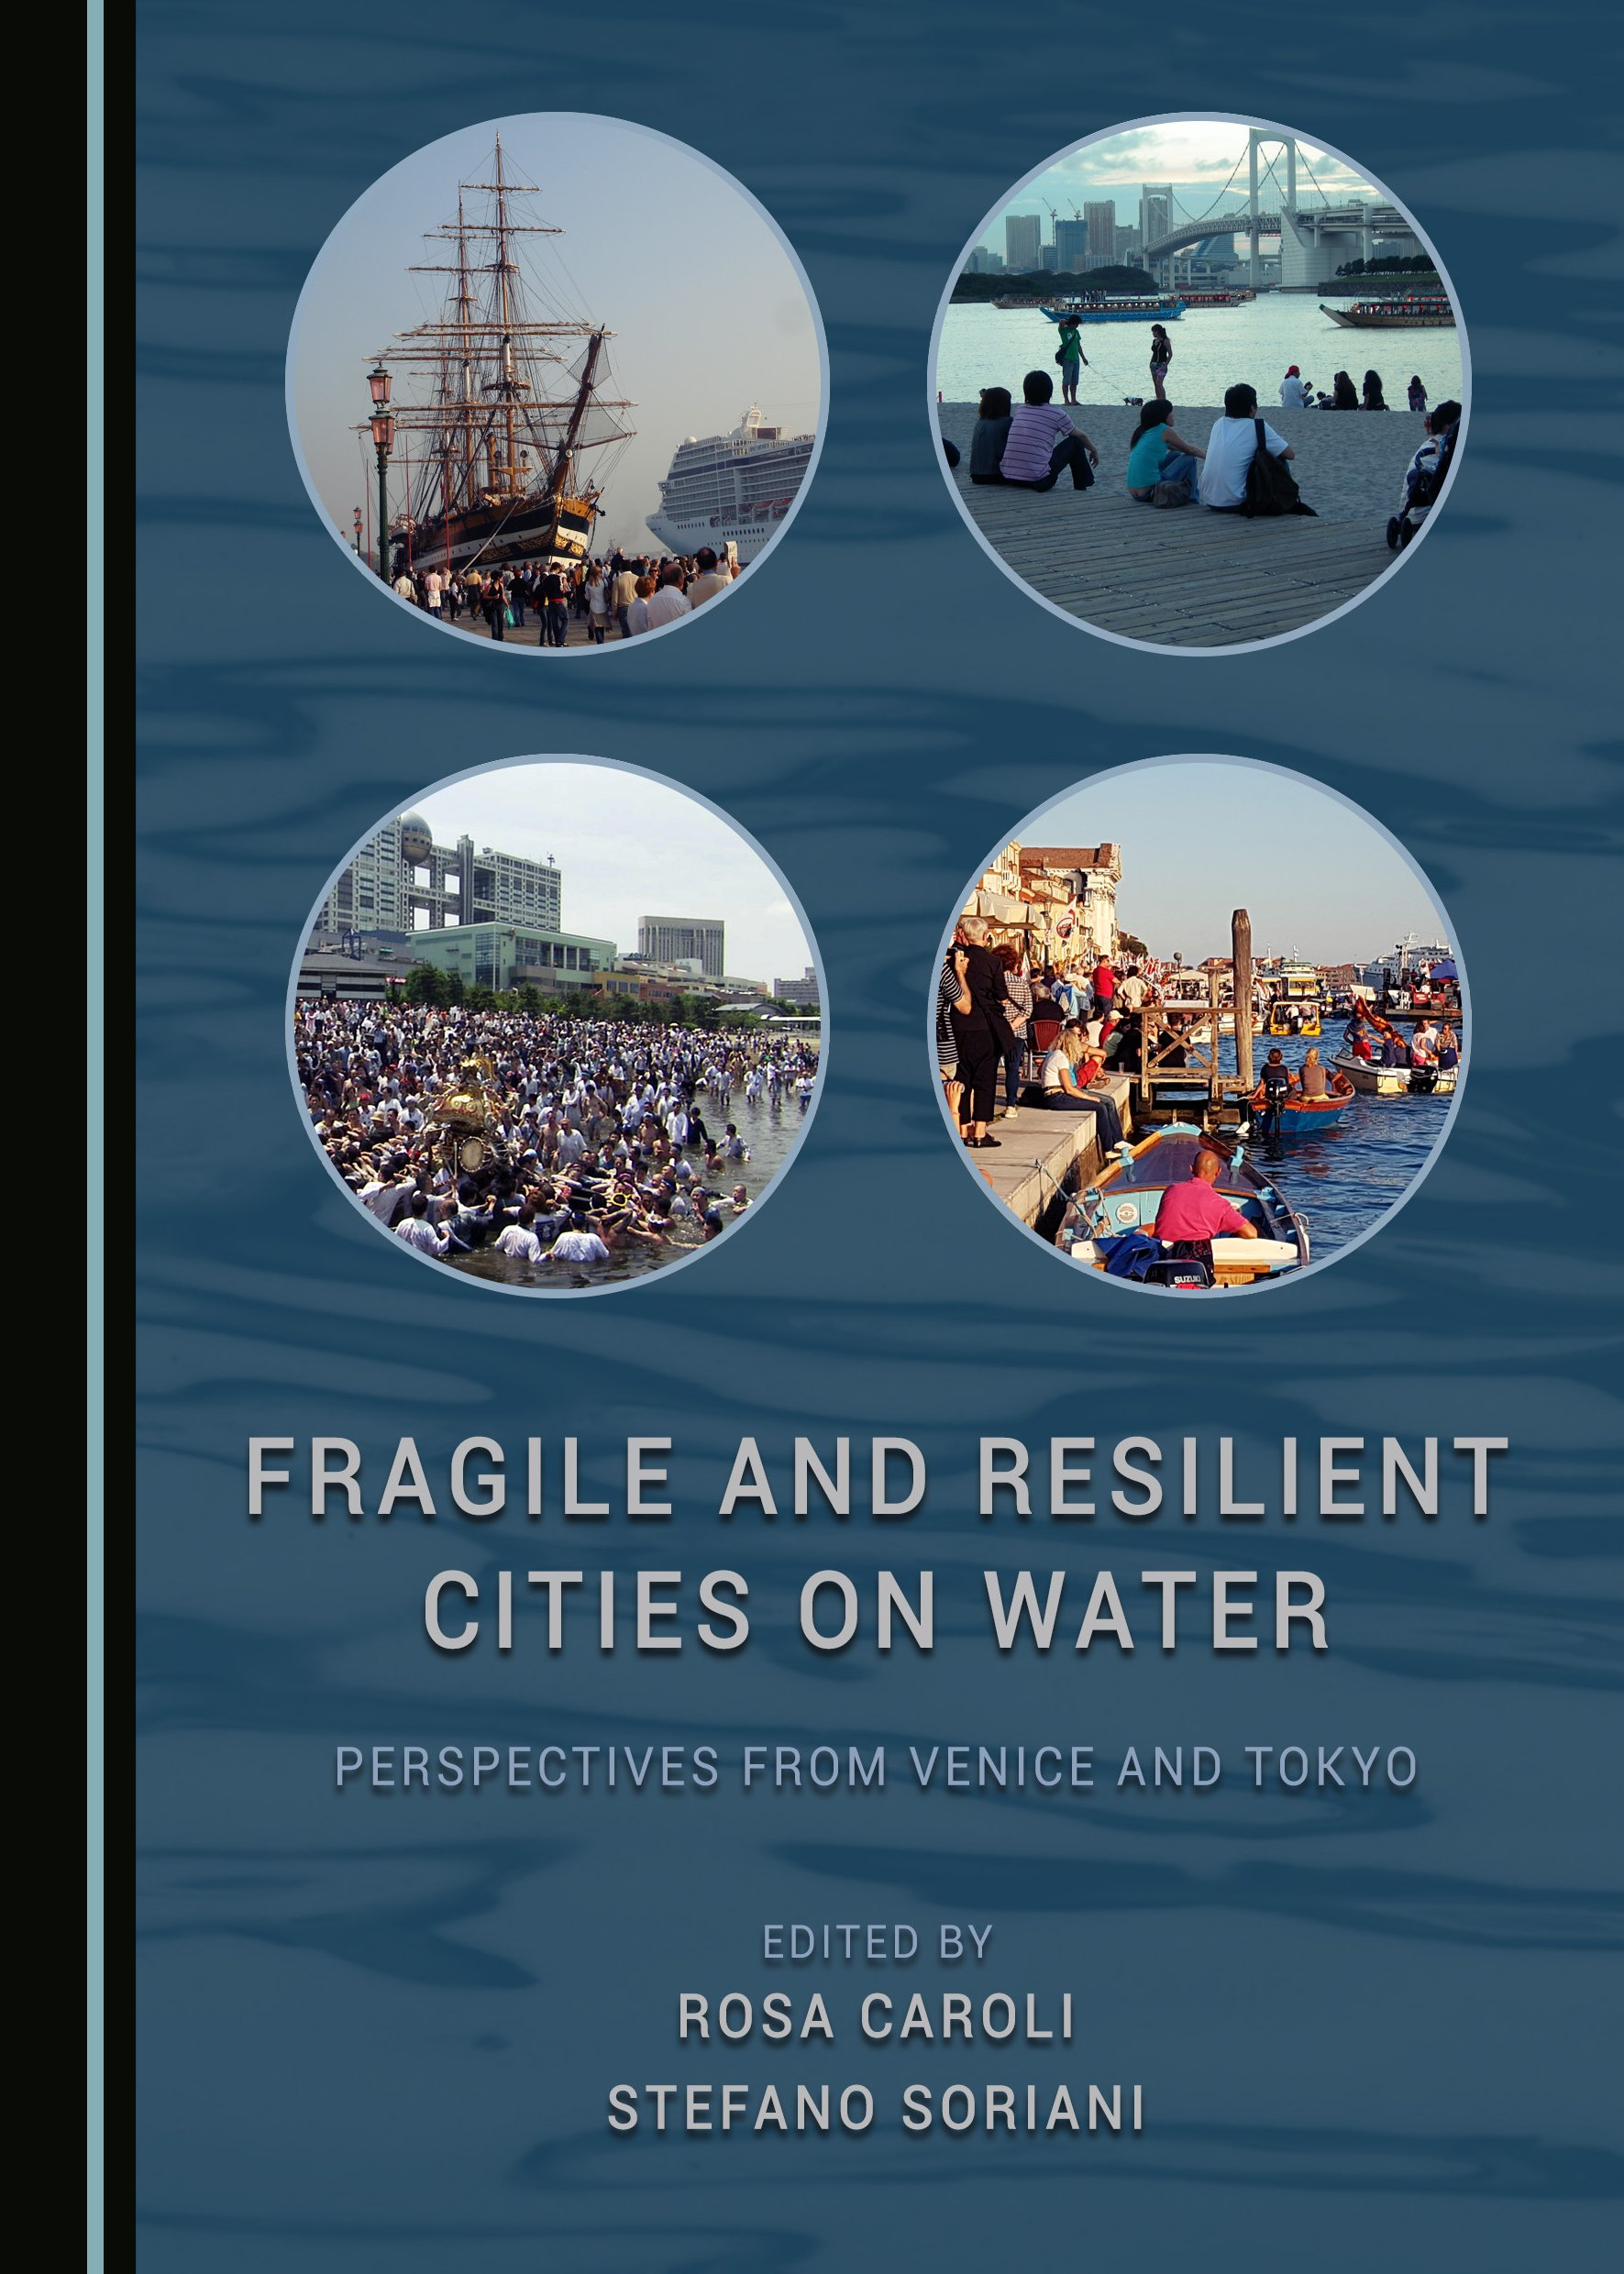 Fragile and Resilient Cities on Water: Perspectives from Venice and Tokyo